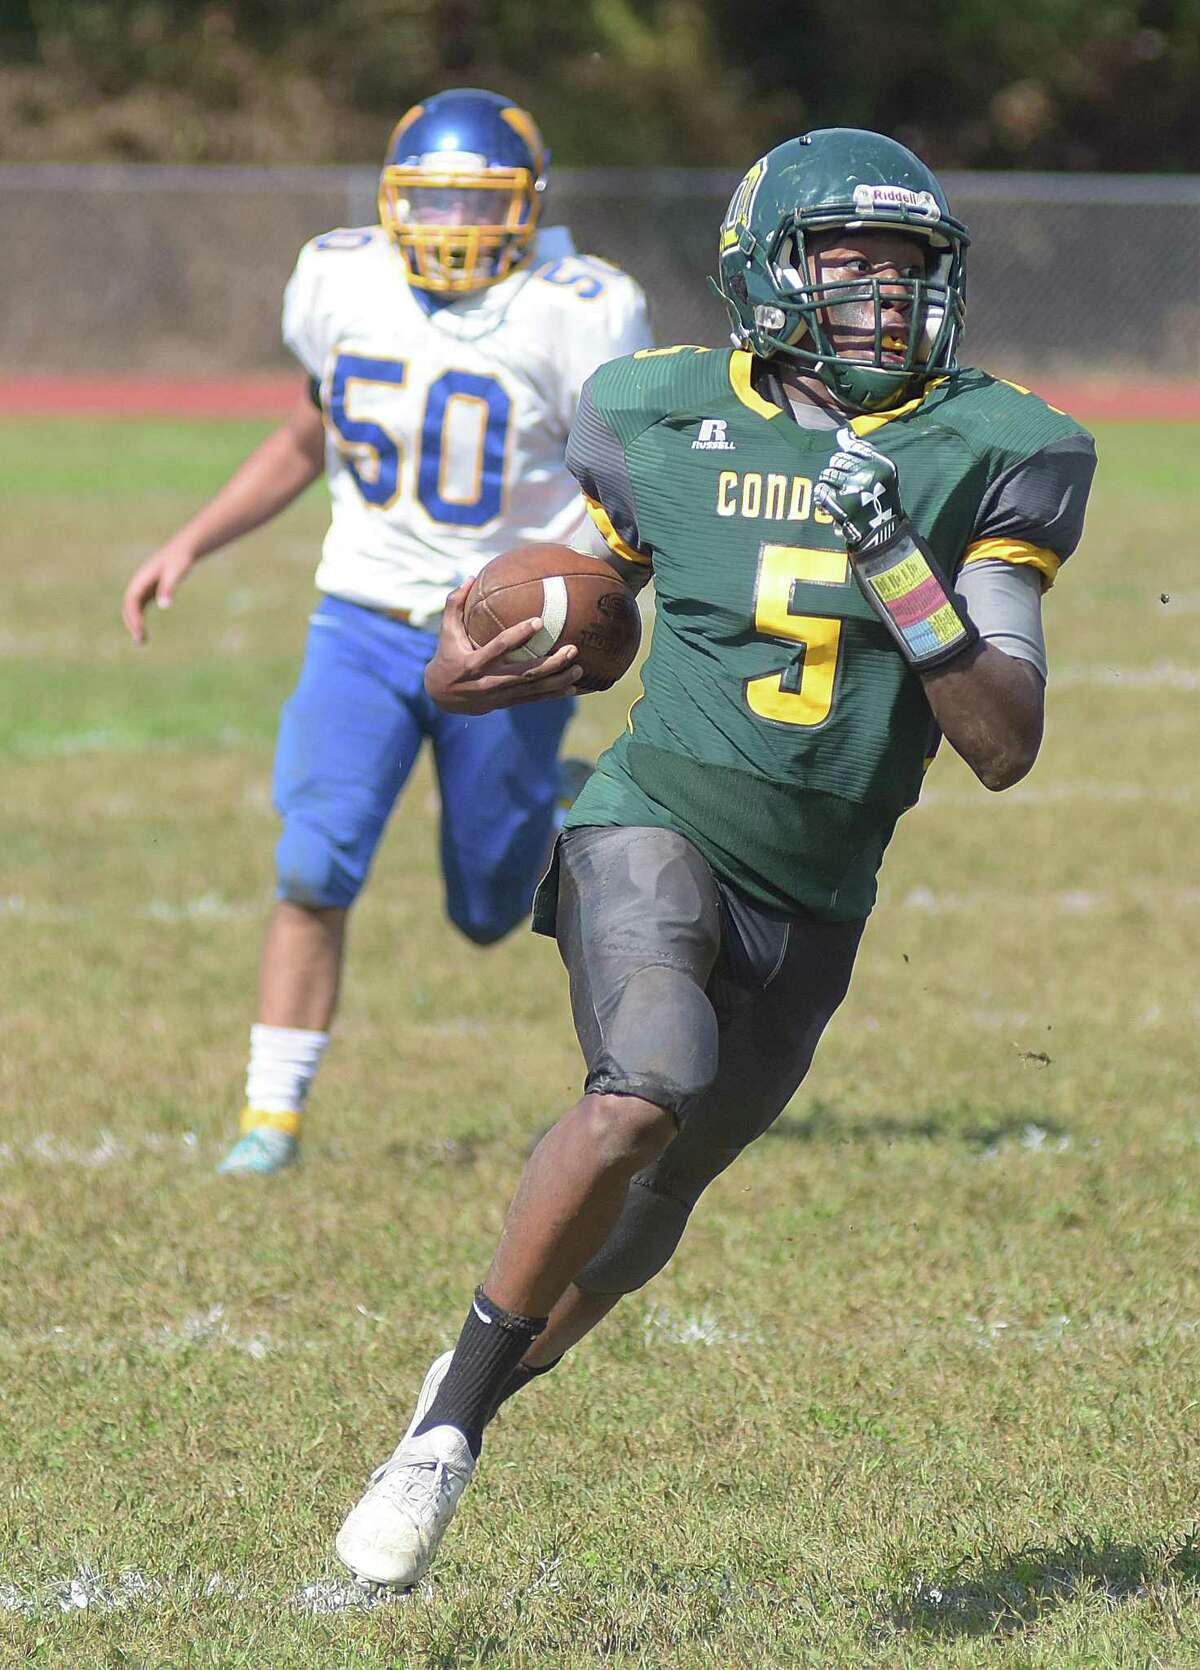 O?'Brien Tech?'s Jonte Roc (5) runs away from the defense during Saturday?'s high school football game against Wilcox Tech in Ansonia.